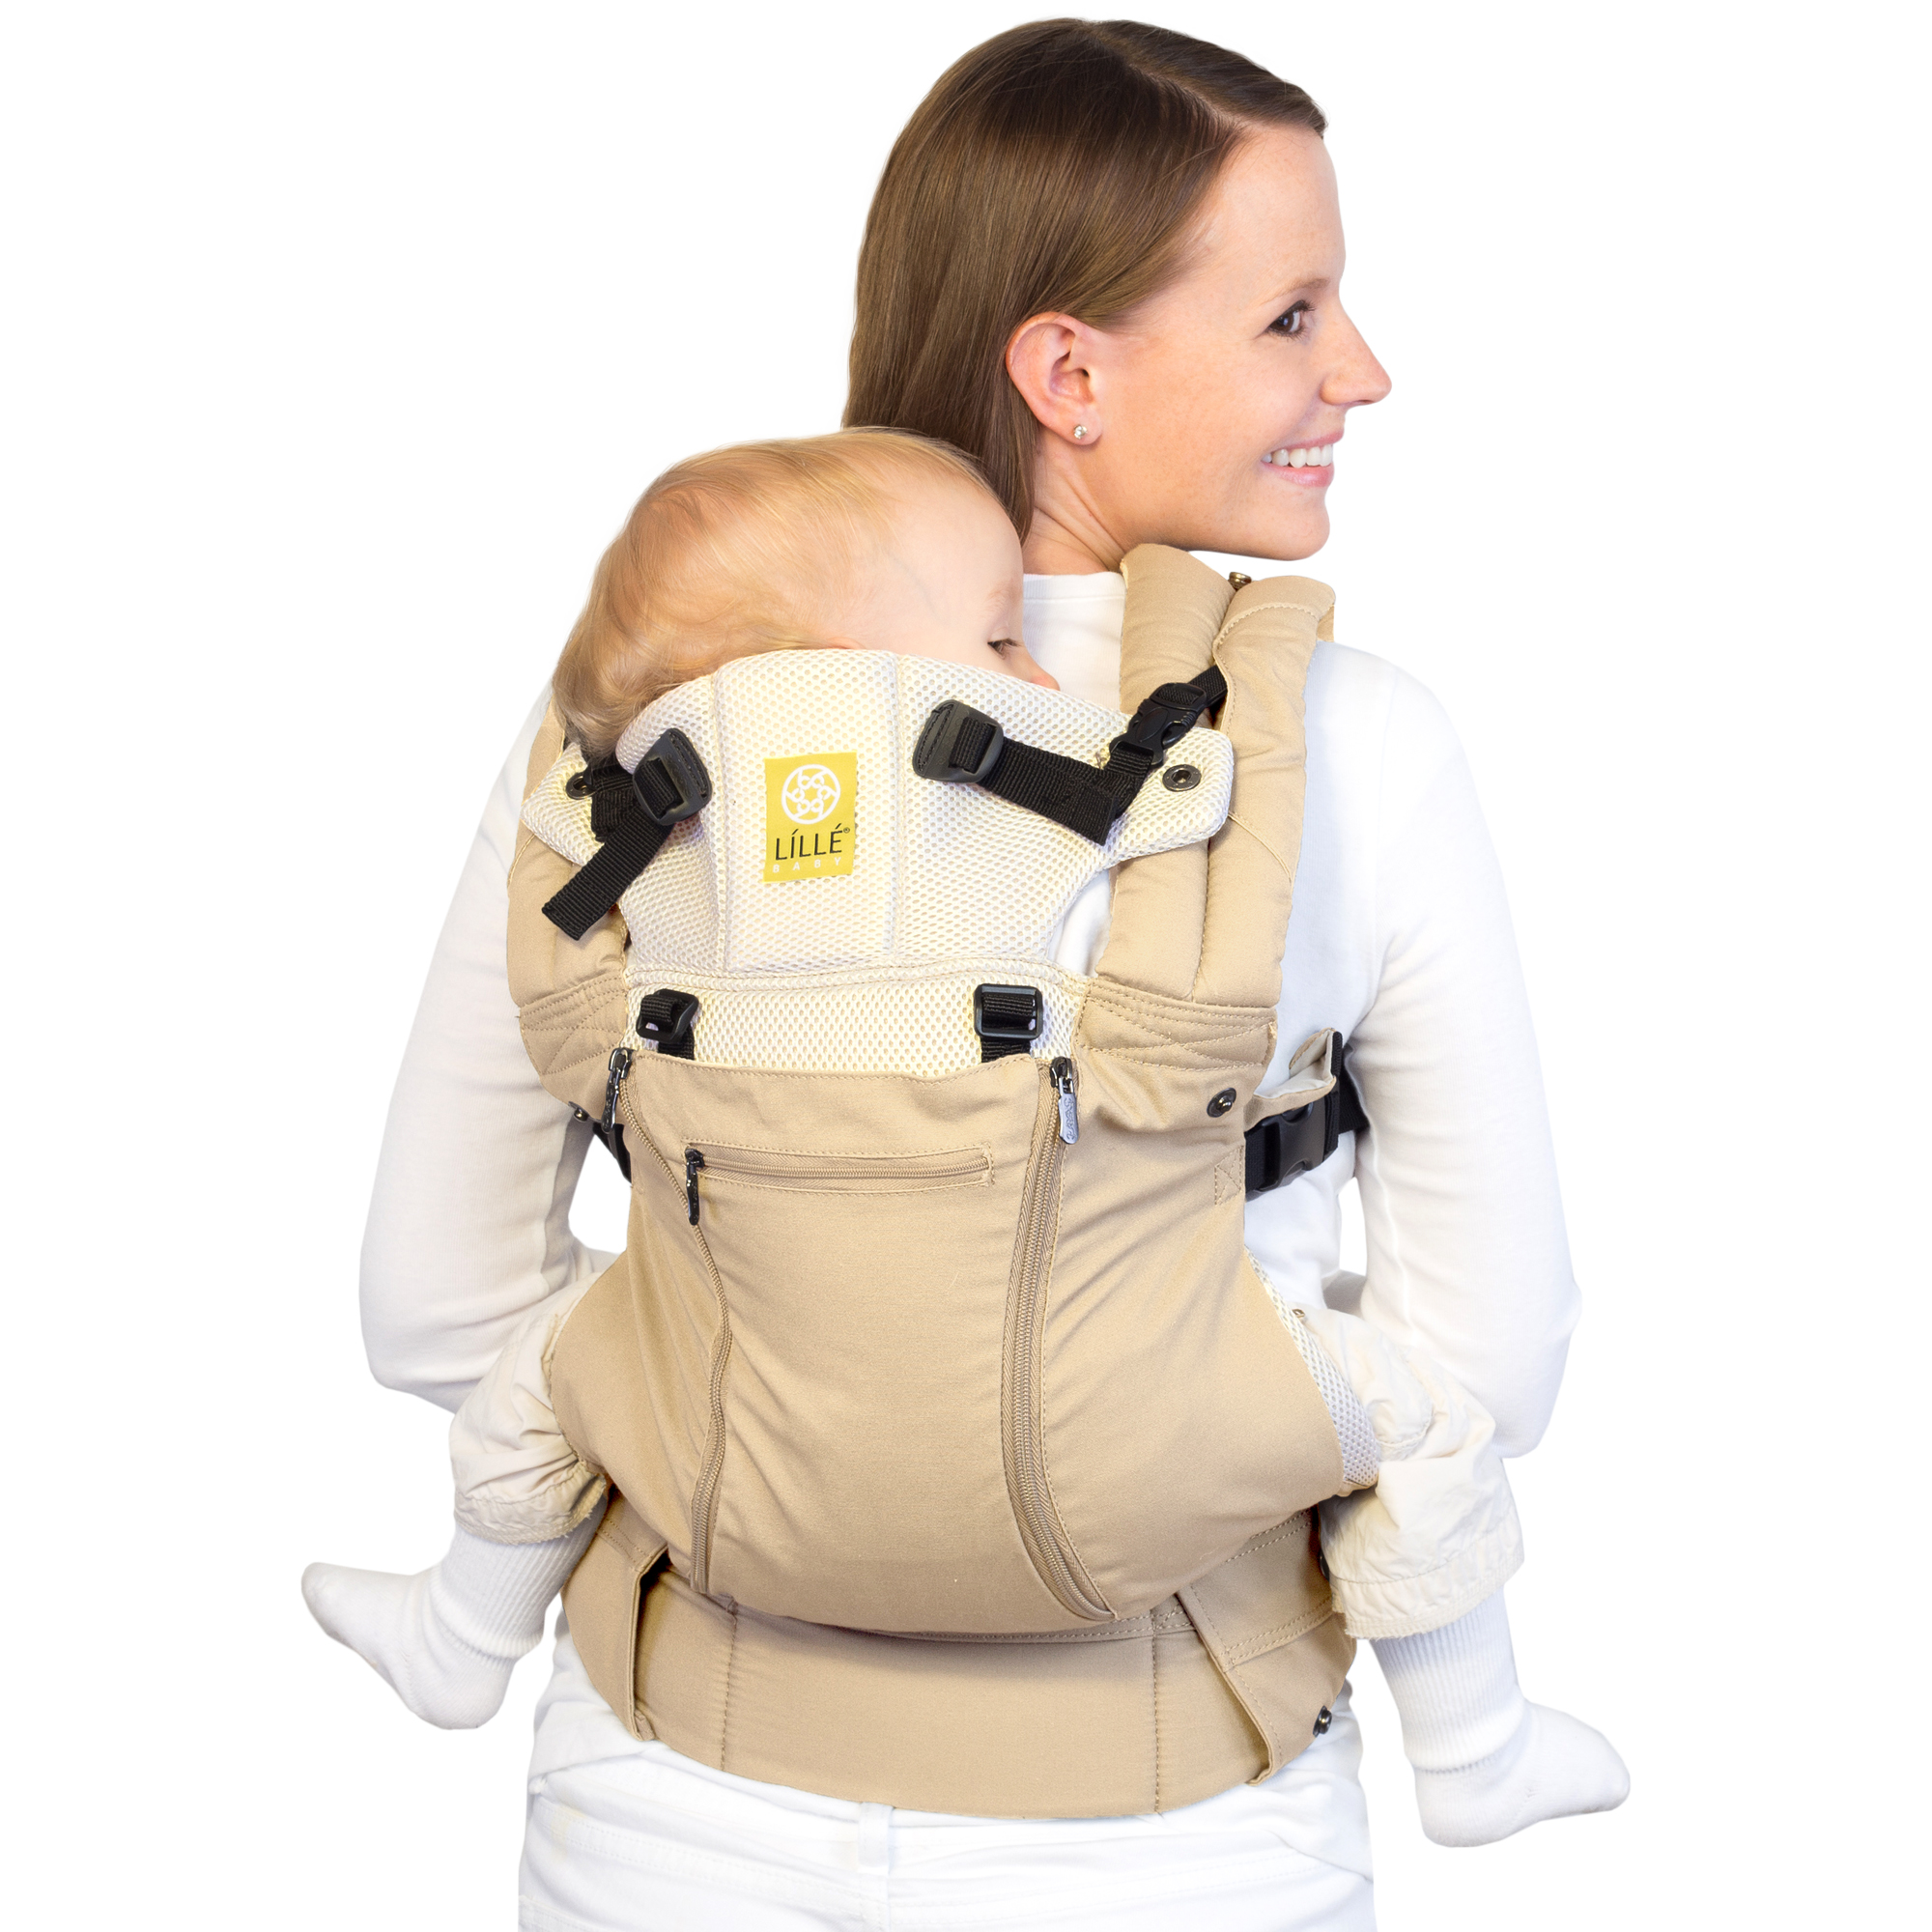 lillebaby-complete-all-seasons-baby-carrier-sand-back.jpg